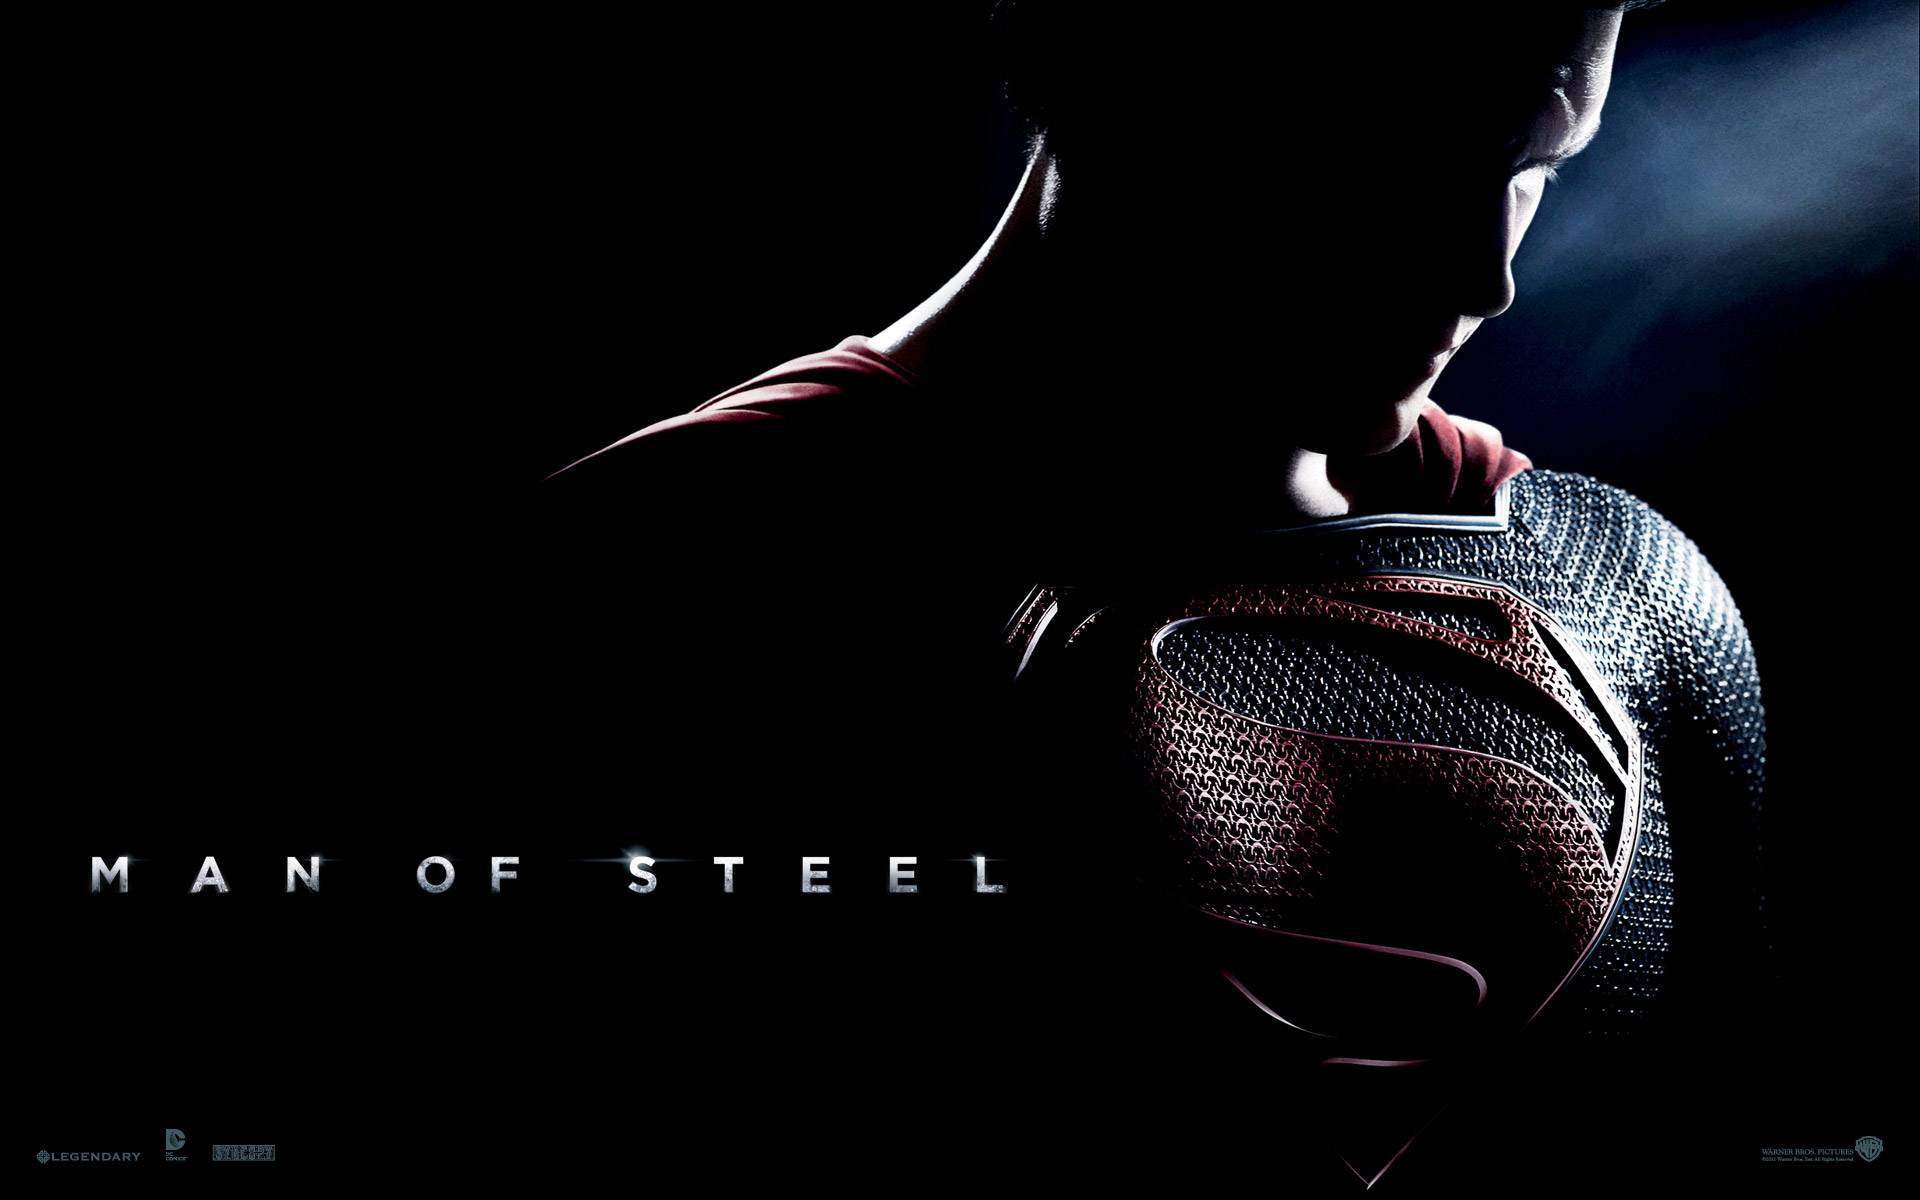 Superman Man of Steel 2013 Movie Wallpapers HD 1920x1200